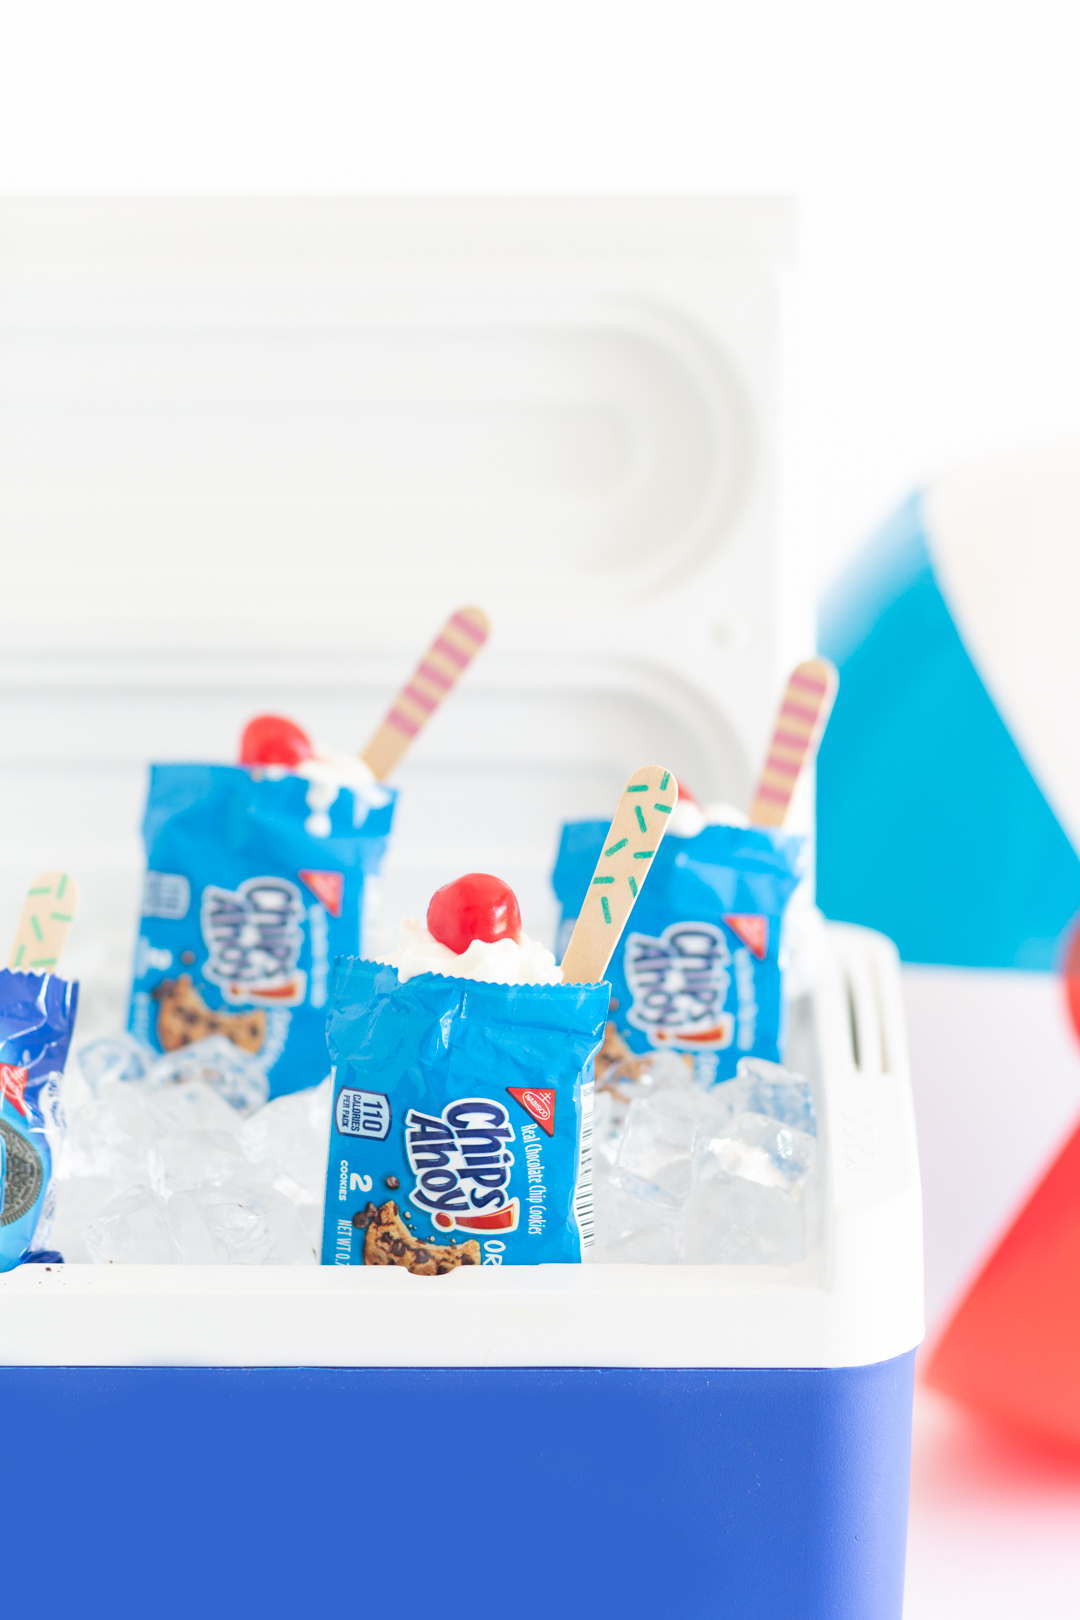 handheld desserts being served out of a cooler with ice